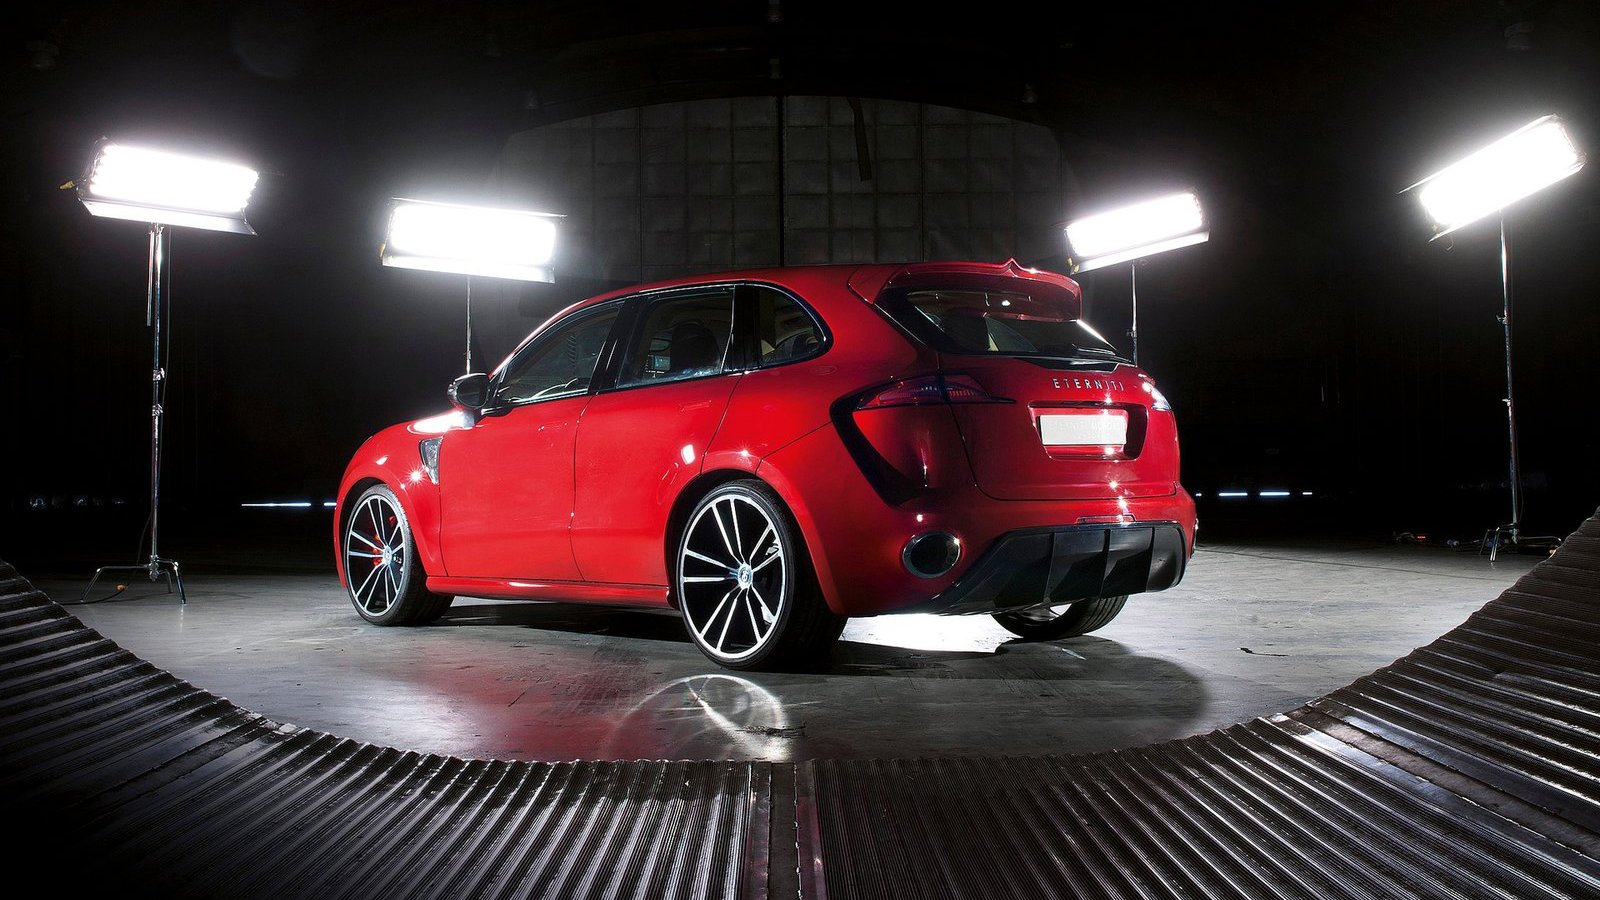 Latest Car Wallpapers In Good Images 2013 Eterniti Artemis On 23 Free Download